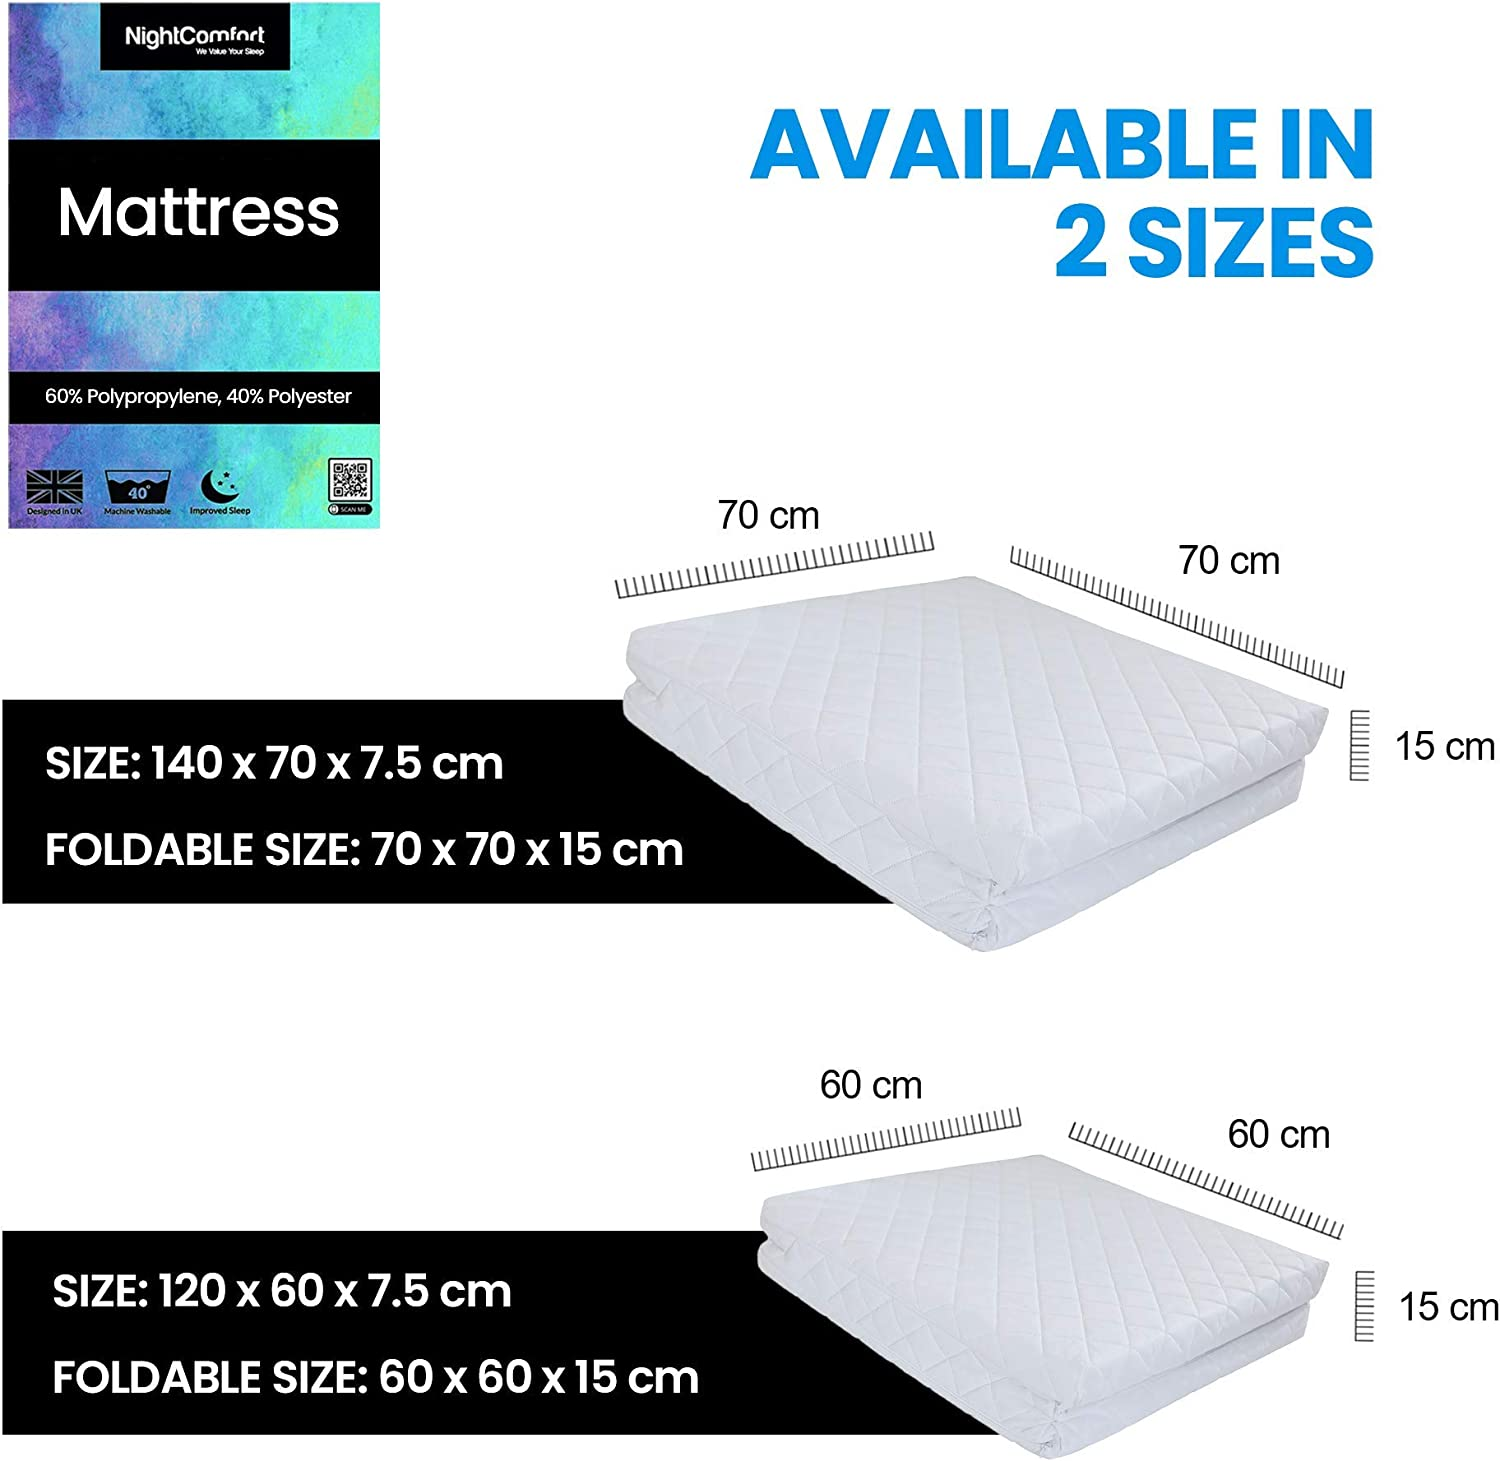 140x70x7.5cm// 70x70x15cm NightComfort Foldable Baby and Toddler Travel Cot Bed Mattress Breathable Quilted and Waterproof